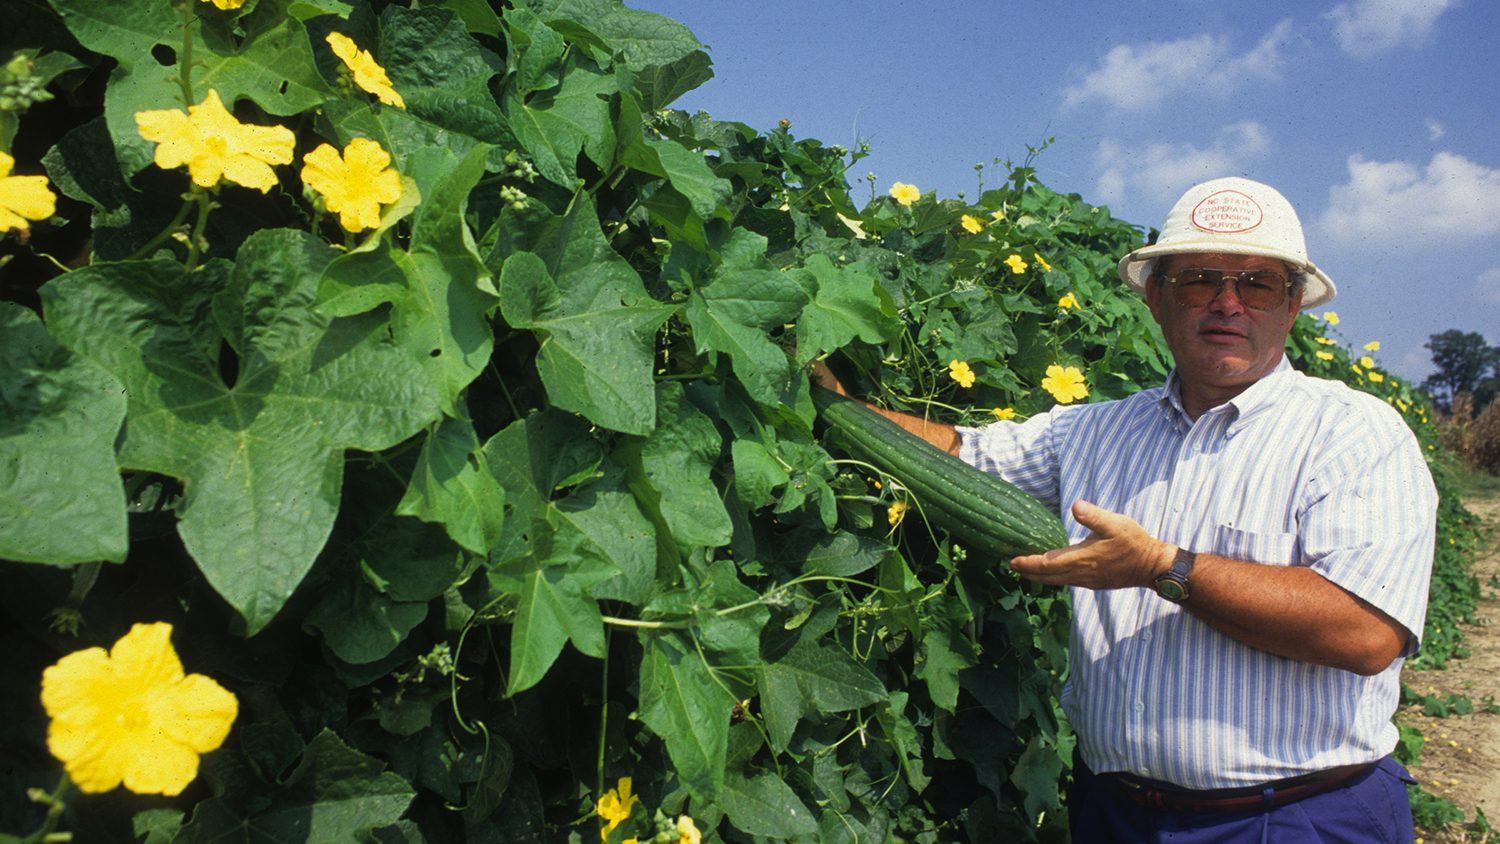 Farmer stands with Luffa Gourds